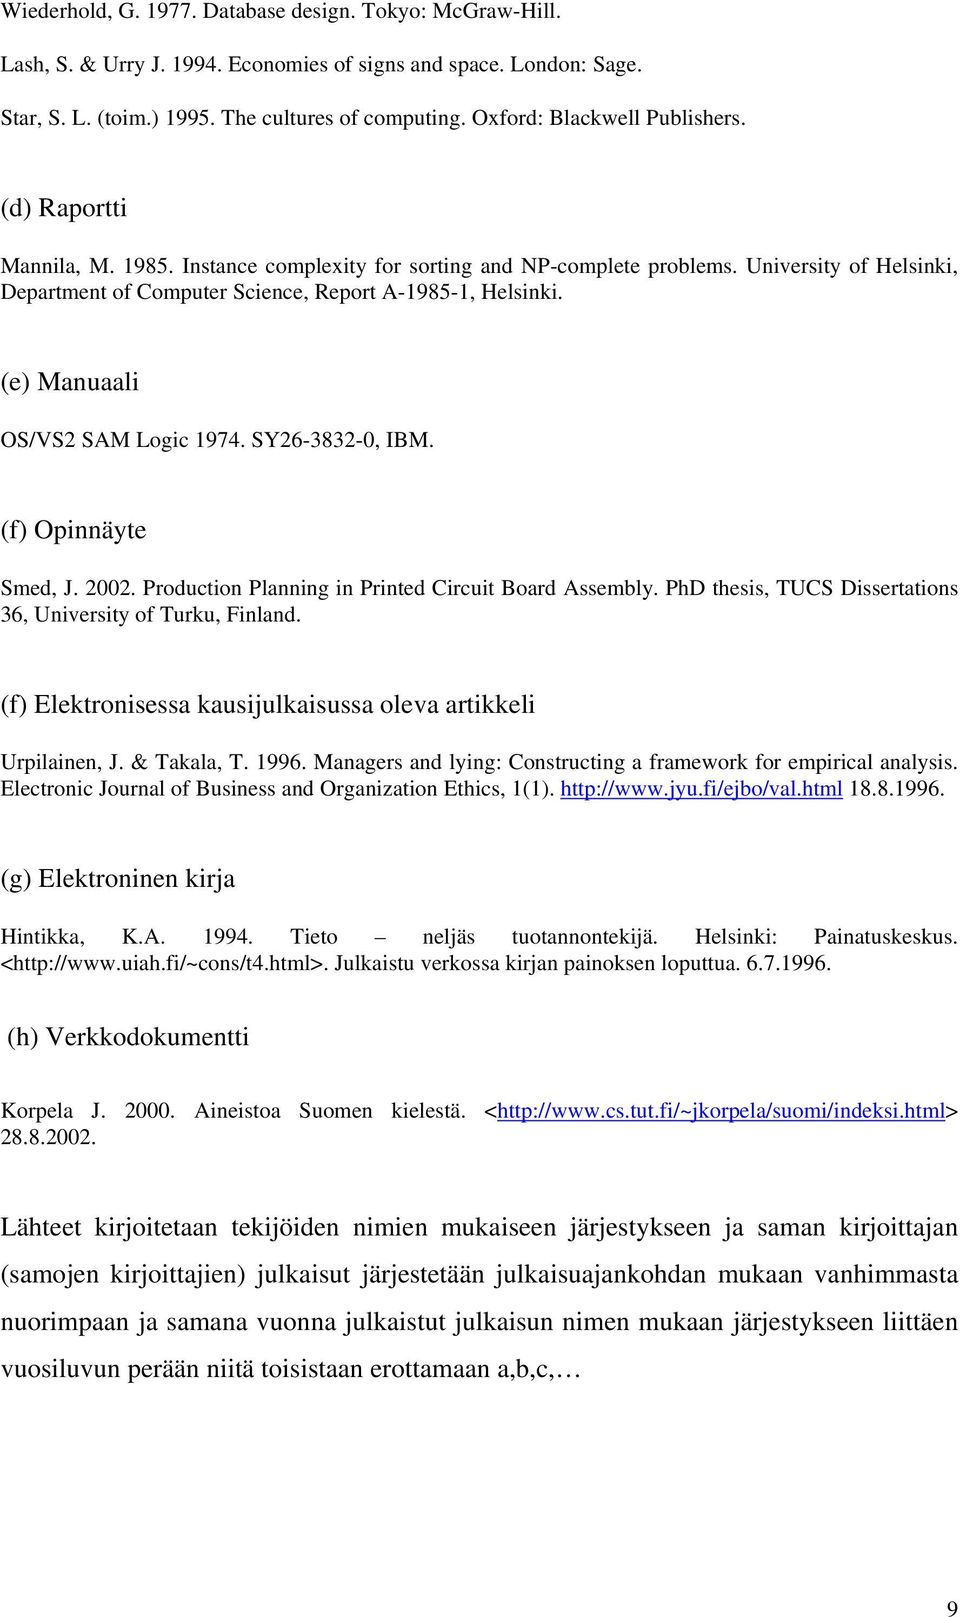 University of Helsinki, Department of Computer Science, Report A-1985-1, Helsinki. (e) Manuaali OS/VS2 SAM Logic 1974. SY26-3832-0, IBM. (f) Opinnäyte Smed, J. 2002.